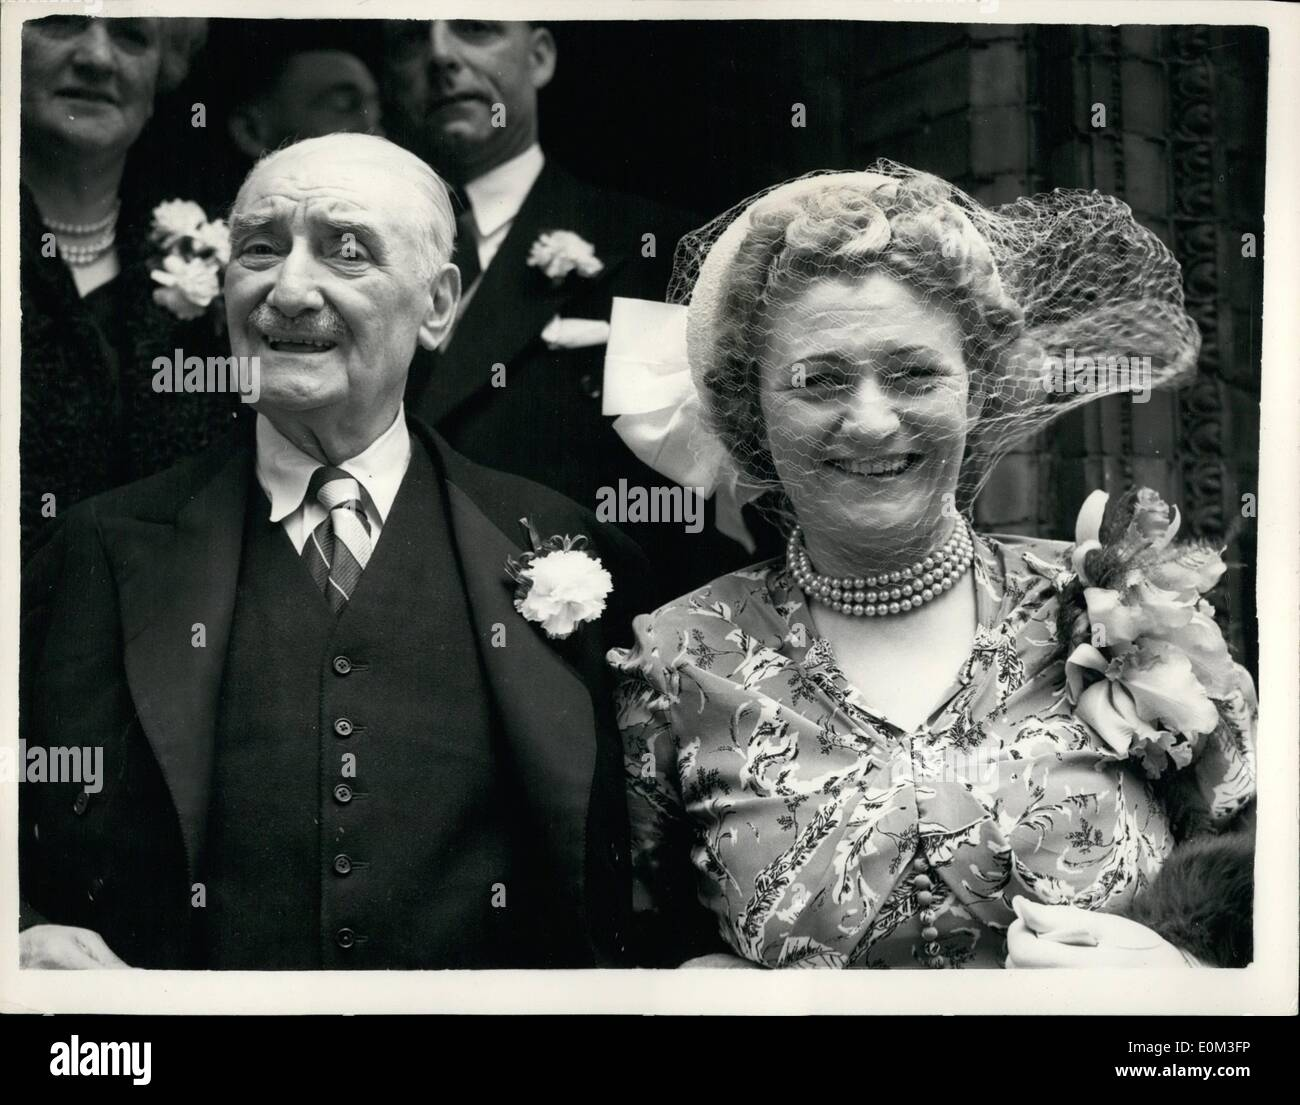 May 05, 1953 - Husband was ''Gaga'' says Qcin $ 120,000 action by widow: A wealthy shipowner of 78, who died on 18 days after marrying a 38 year old cashier from his West End Club, was ''completely gaga'' at the rime of the wedding four years ago, it was stated in the High Court today. On that ground a nephew of the shipowner claims that the marriage was null and void. And on the result of this claim depends te 20,000 estate of the shipowner, Mr. Robert Park, now 42, of Camden Street, St. Pancras, claims nephew, Mr. Peter Langley Park, opposes her claim because of Mr. Perk's mental condition - Stock Image